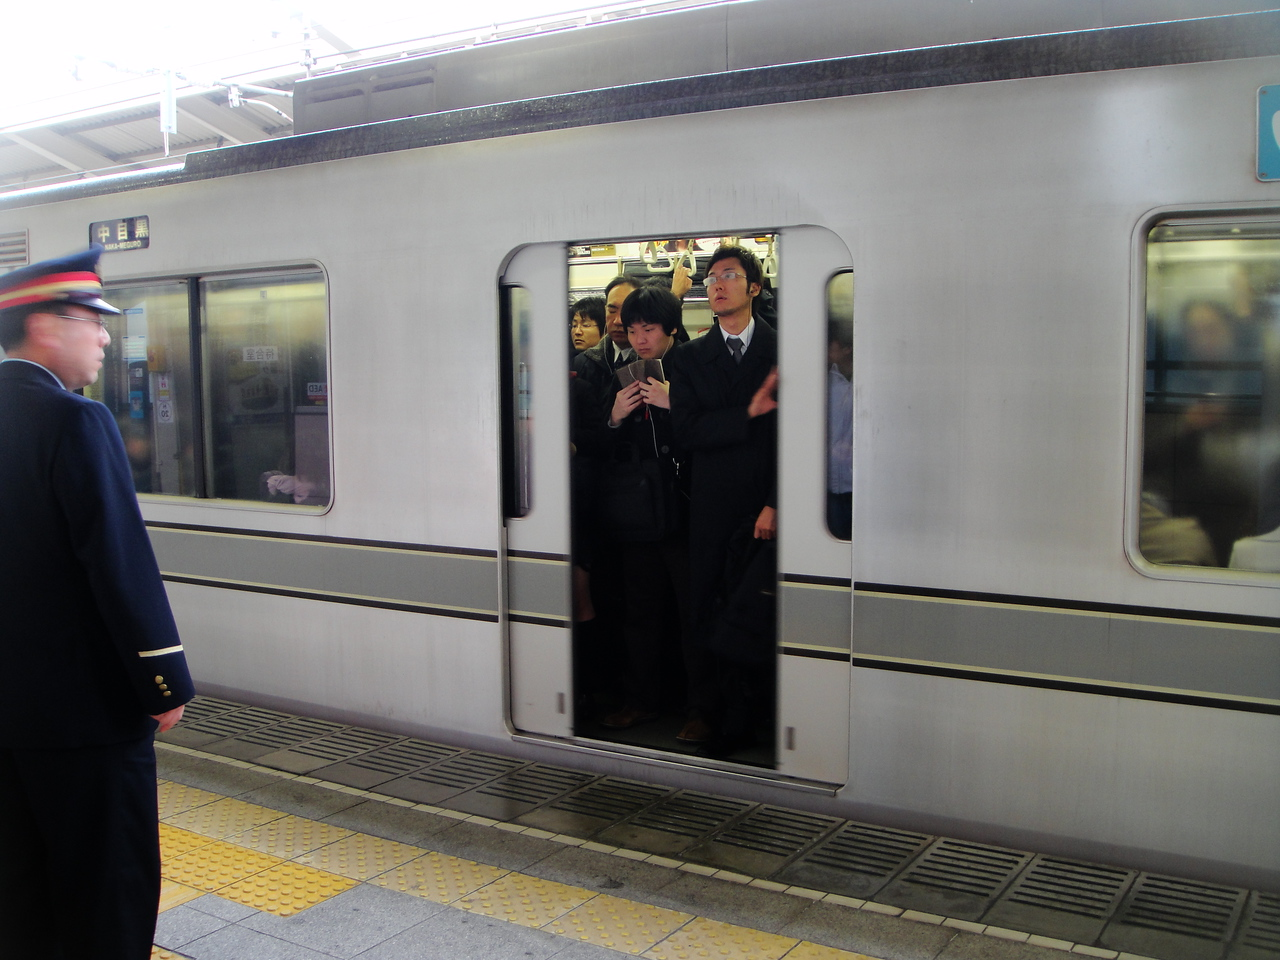 Yes, the gentleman on the left is there to assure that everyone can get inside...and he is happy to give a little push if everyone isn't properly tucked into the train.